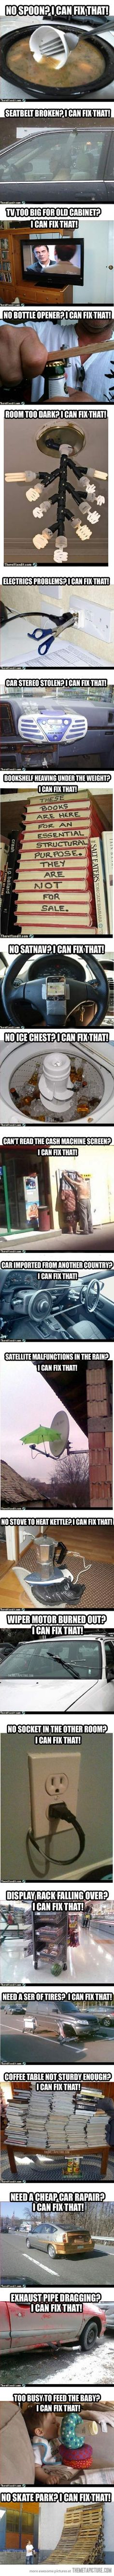 Redneck ways to fix things XD